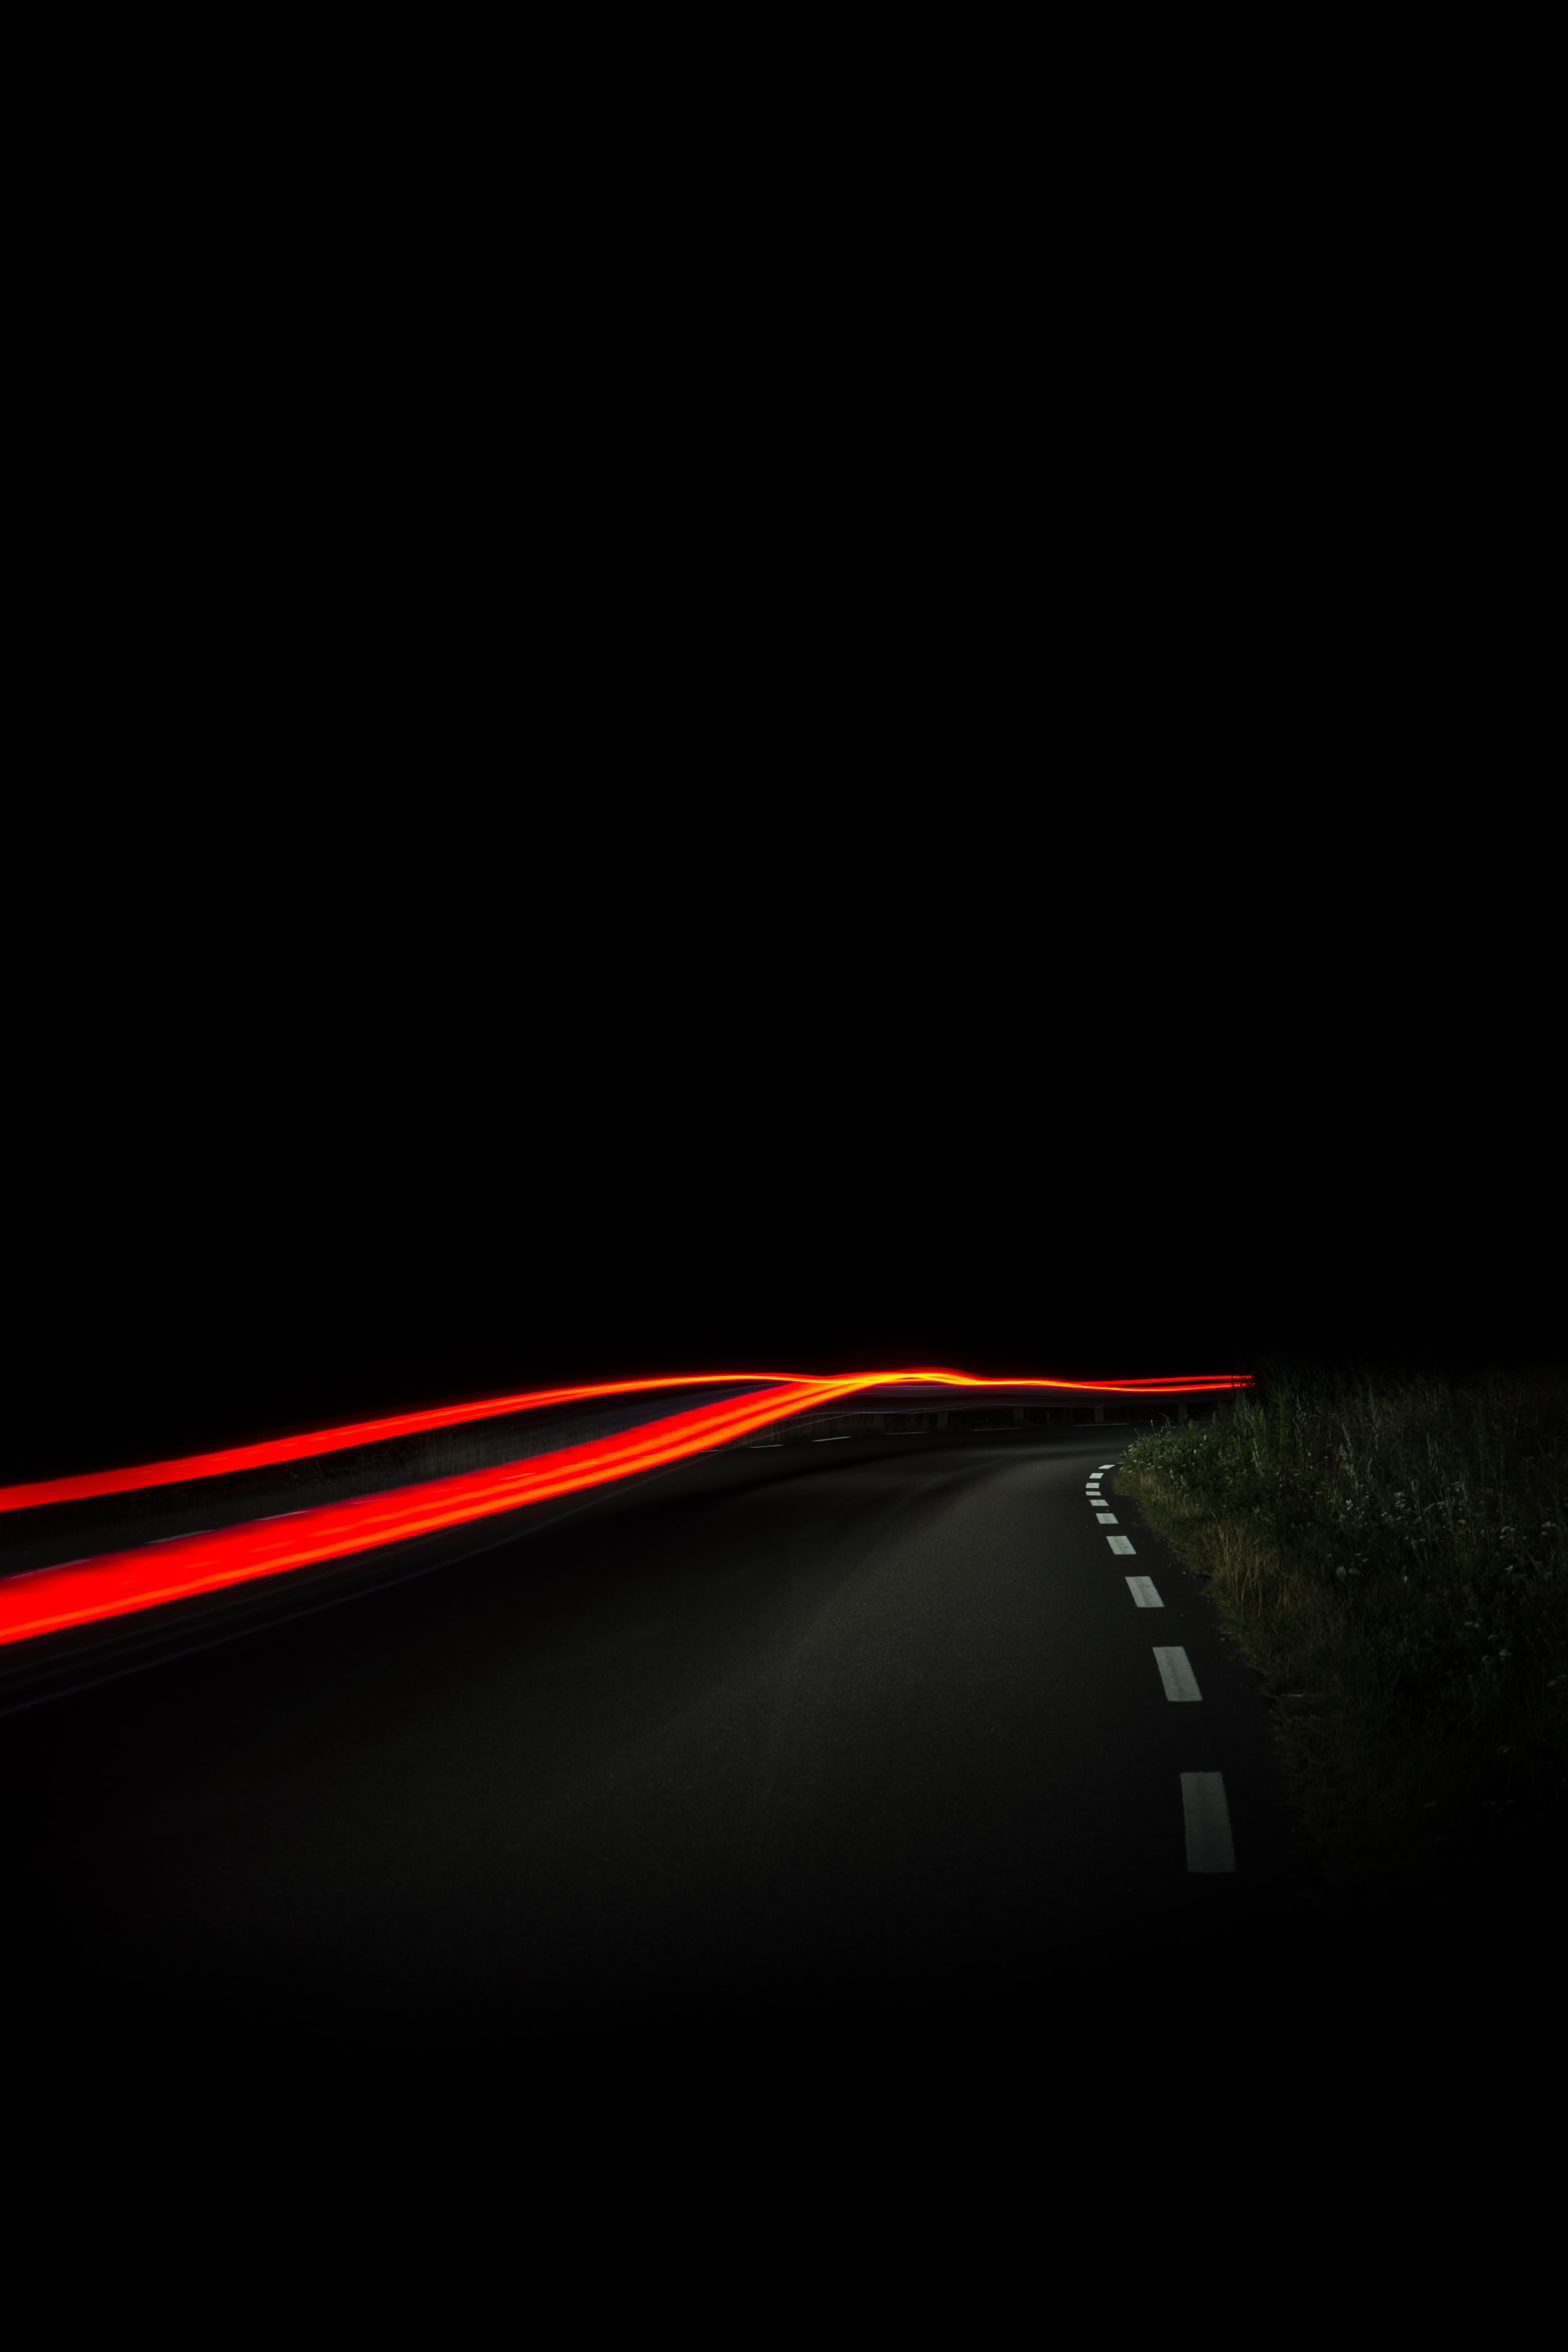 A blurry night-time shot of a road in Åsa, with red car trails amidst the street's darkness